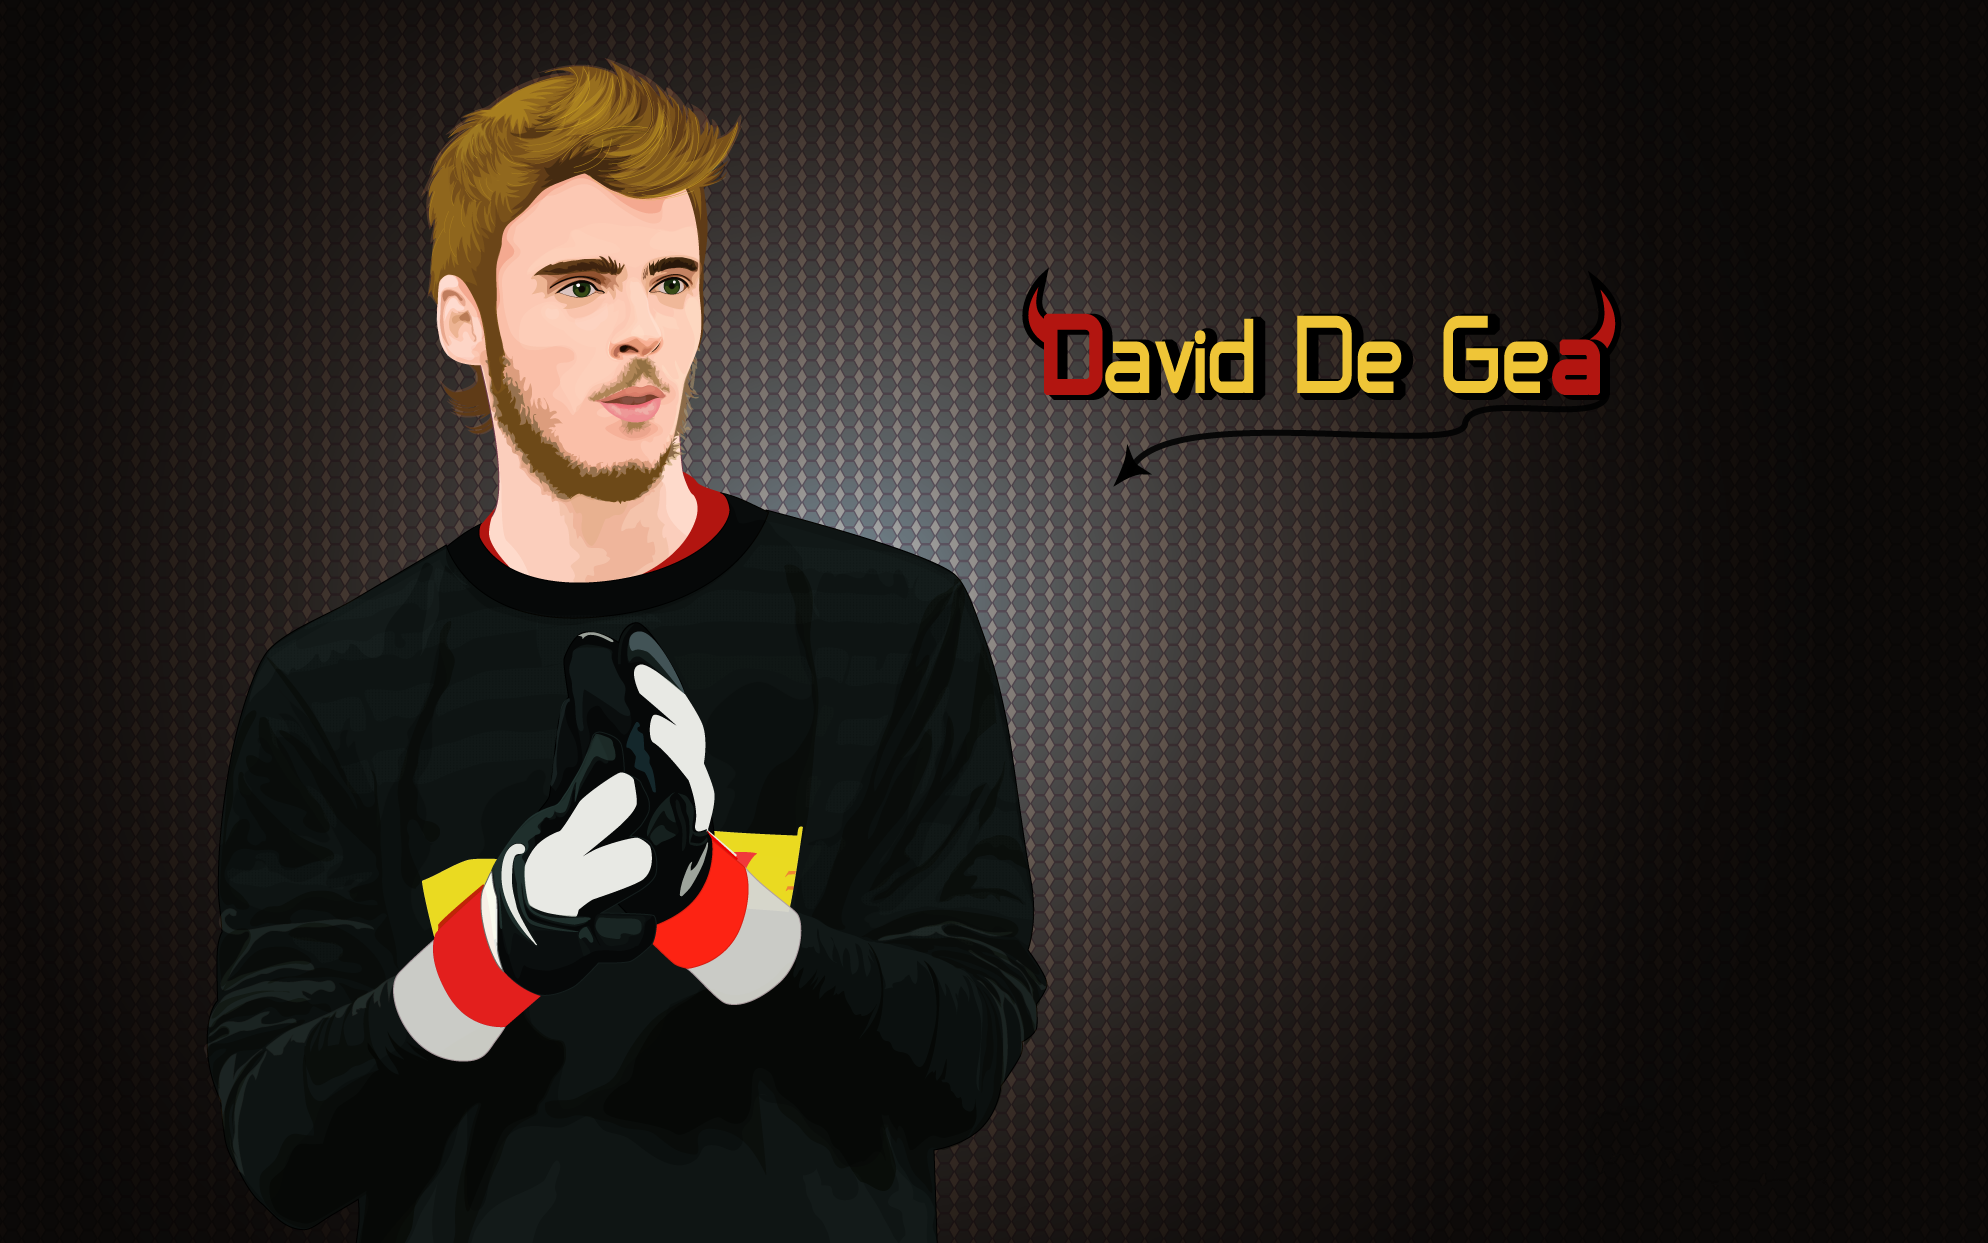 David De Gea Cartoon Exclusive Hd Wallpapers David De Gea